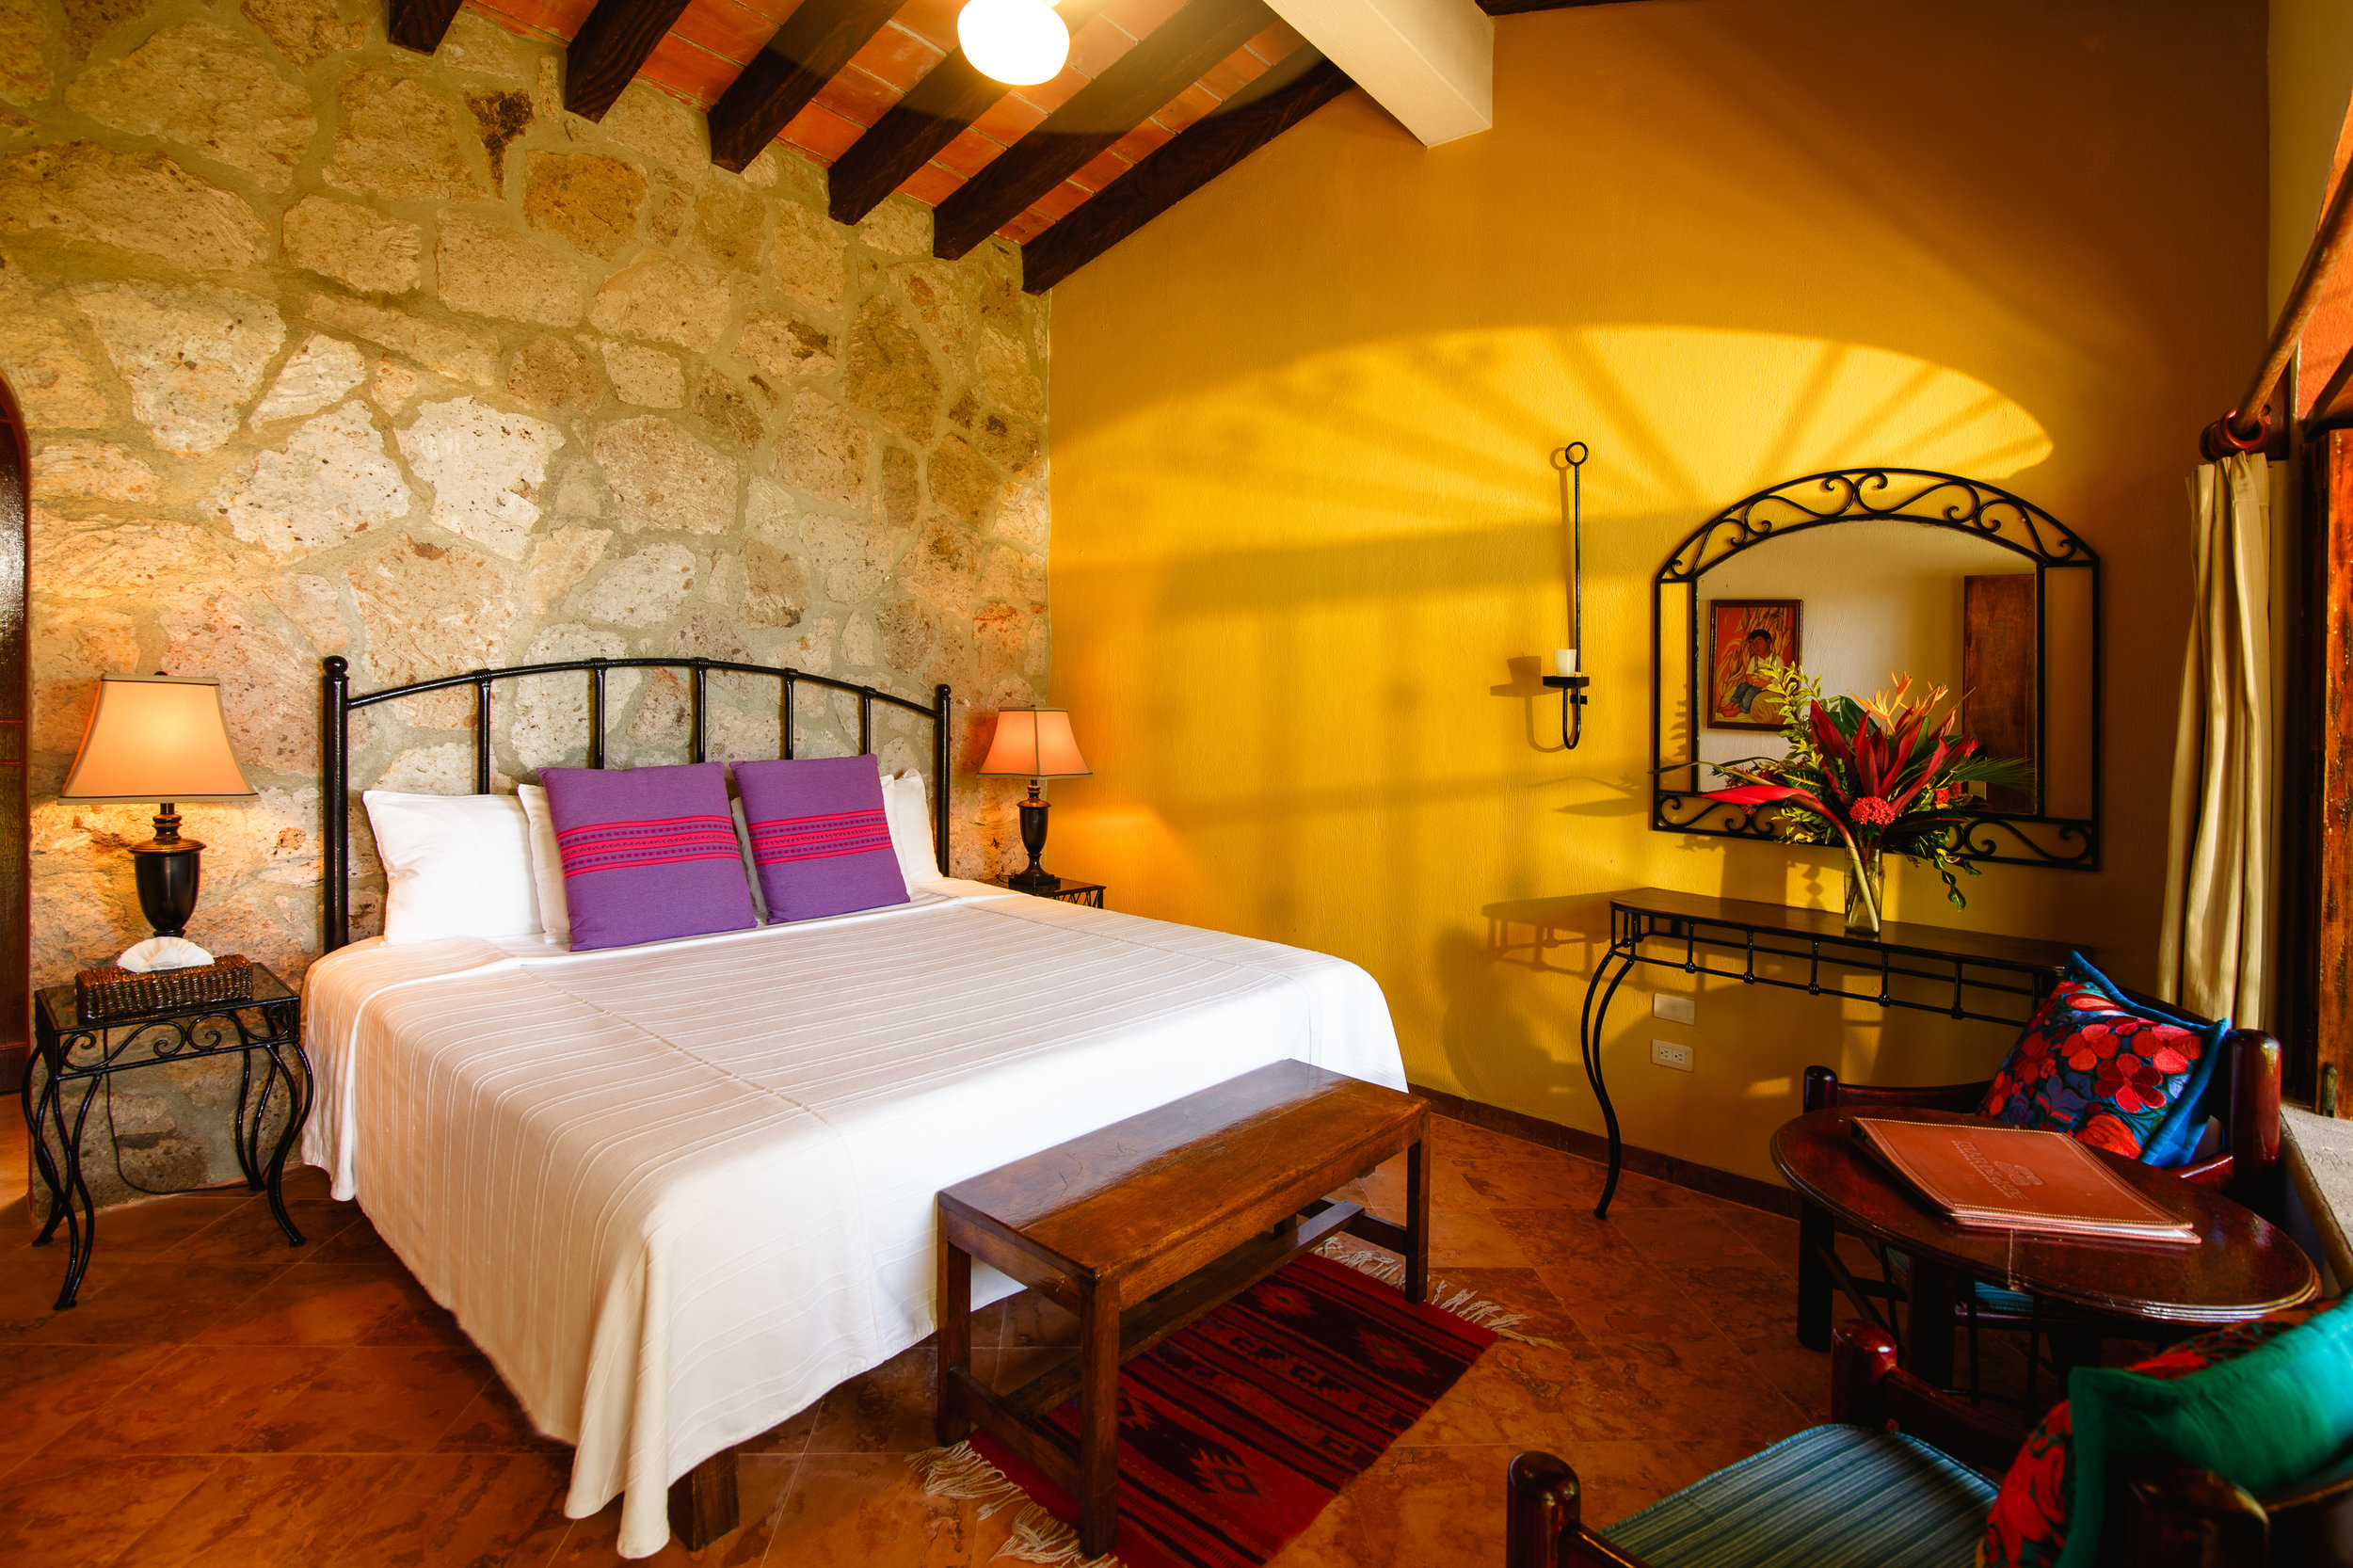 Garden Rooms are Mexican style, with natural rock walls and hand painted mosaics; or with an airy Mediterranean feel with floor-to-ceiling windows that let in plenty of natural light and fresh breeze. Each room has a spacious en-suite bathroom with natural bath amenities.